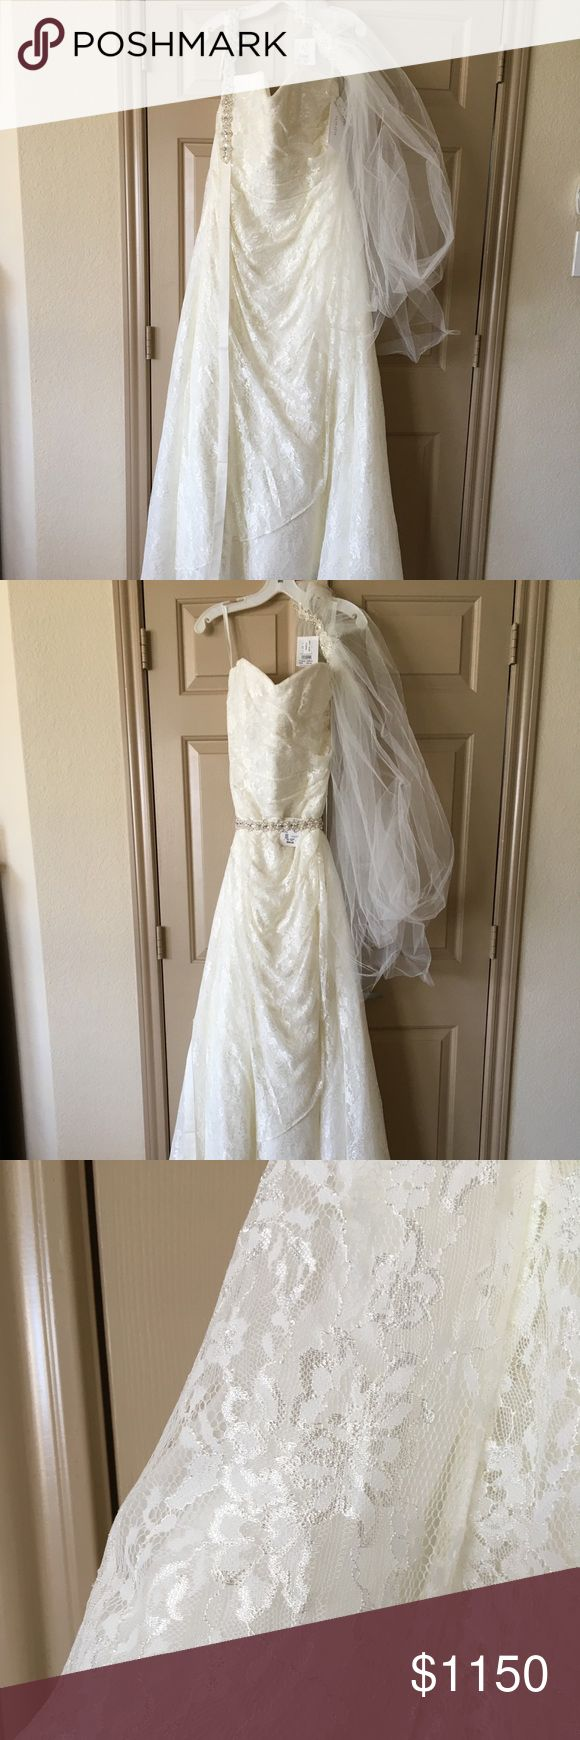 A-Line Lace Wedding Dress w/ Beaded Belt and Veil NEVER BEEN WORN! Lace all over... Size 16W Bust: 43 1/4 Waist: 37 1/4 Low Hip: 46 3/4 Length: 60-61  Long story short, I was engaged and things didn't work out. Dress has never been worn... gorgeous a-line lace gown with beaded belt and veil to match. David's Bridal Dresses Wedding